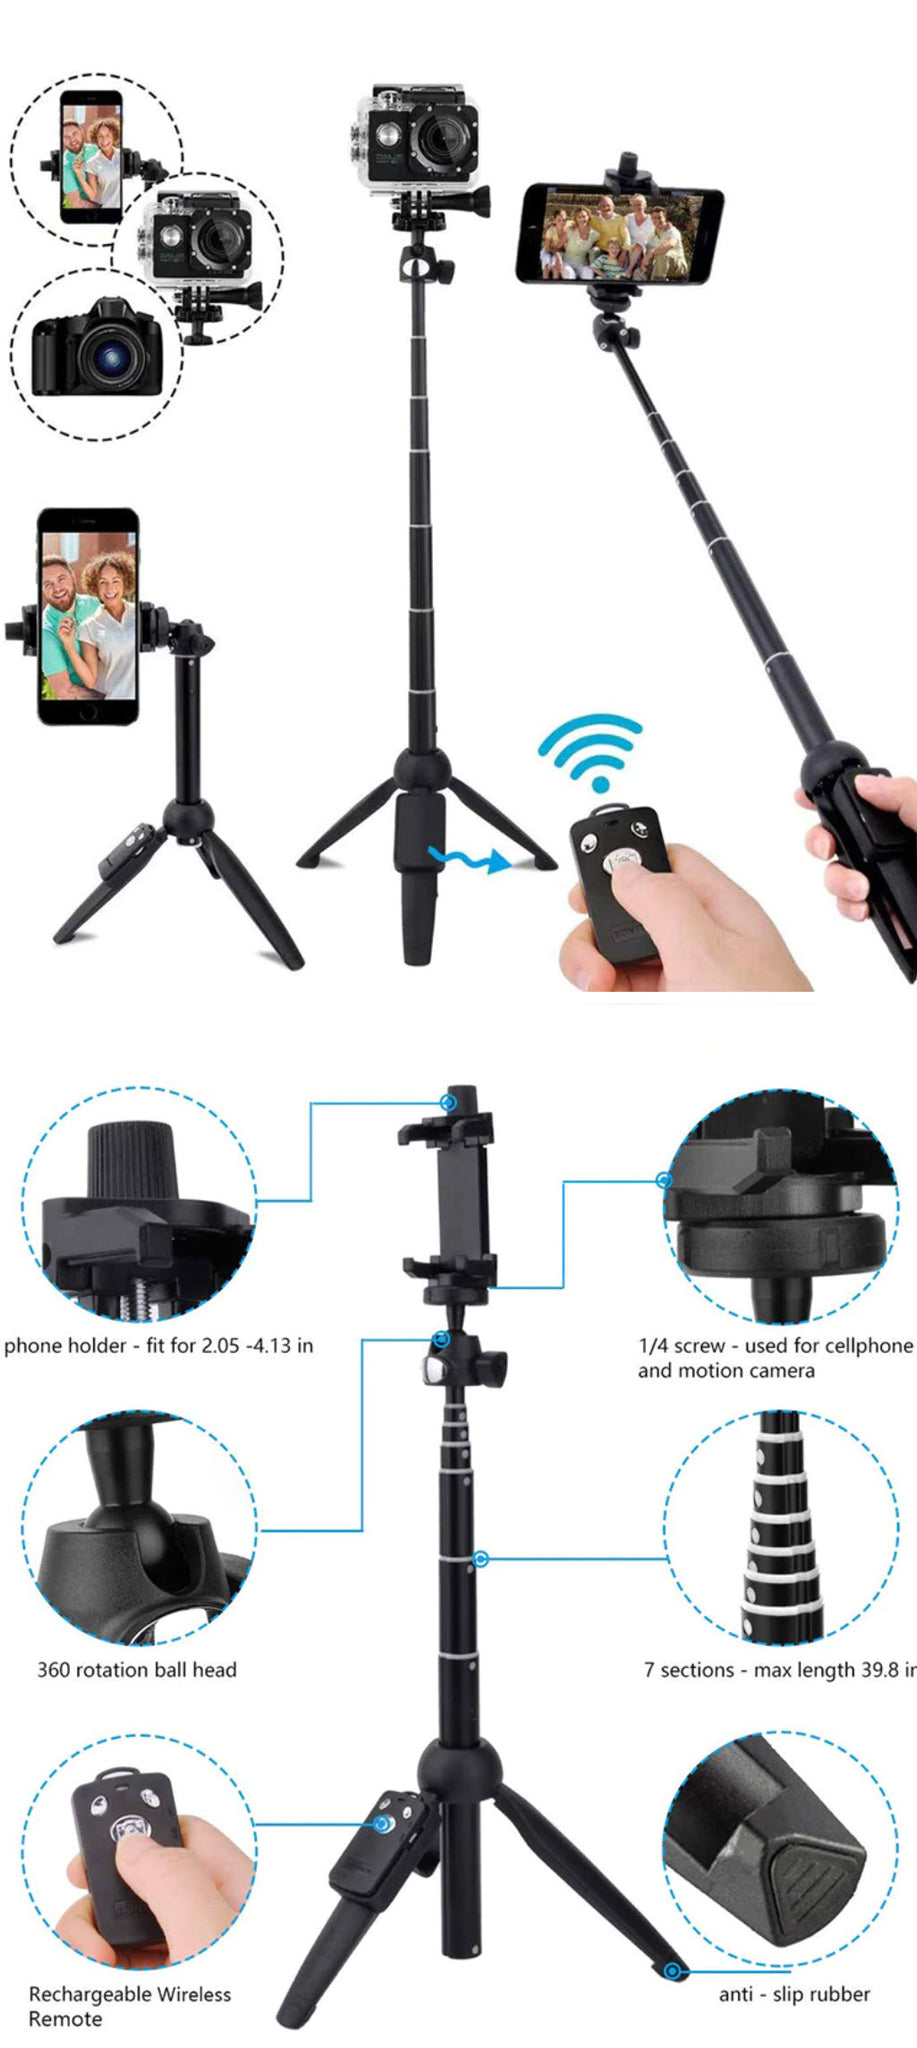 Wireless Bluetooth Super Selfie Stick Product Features